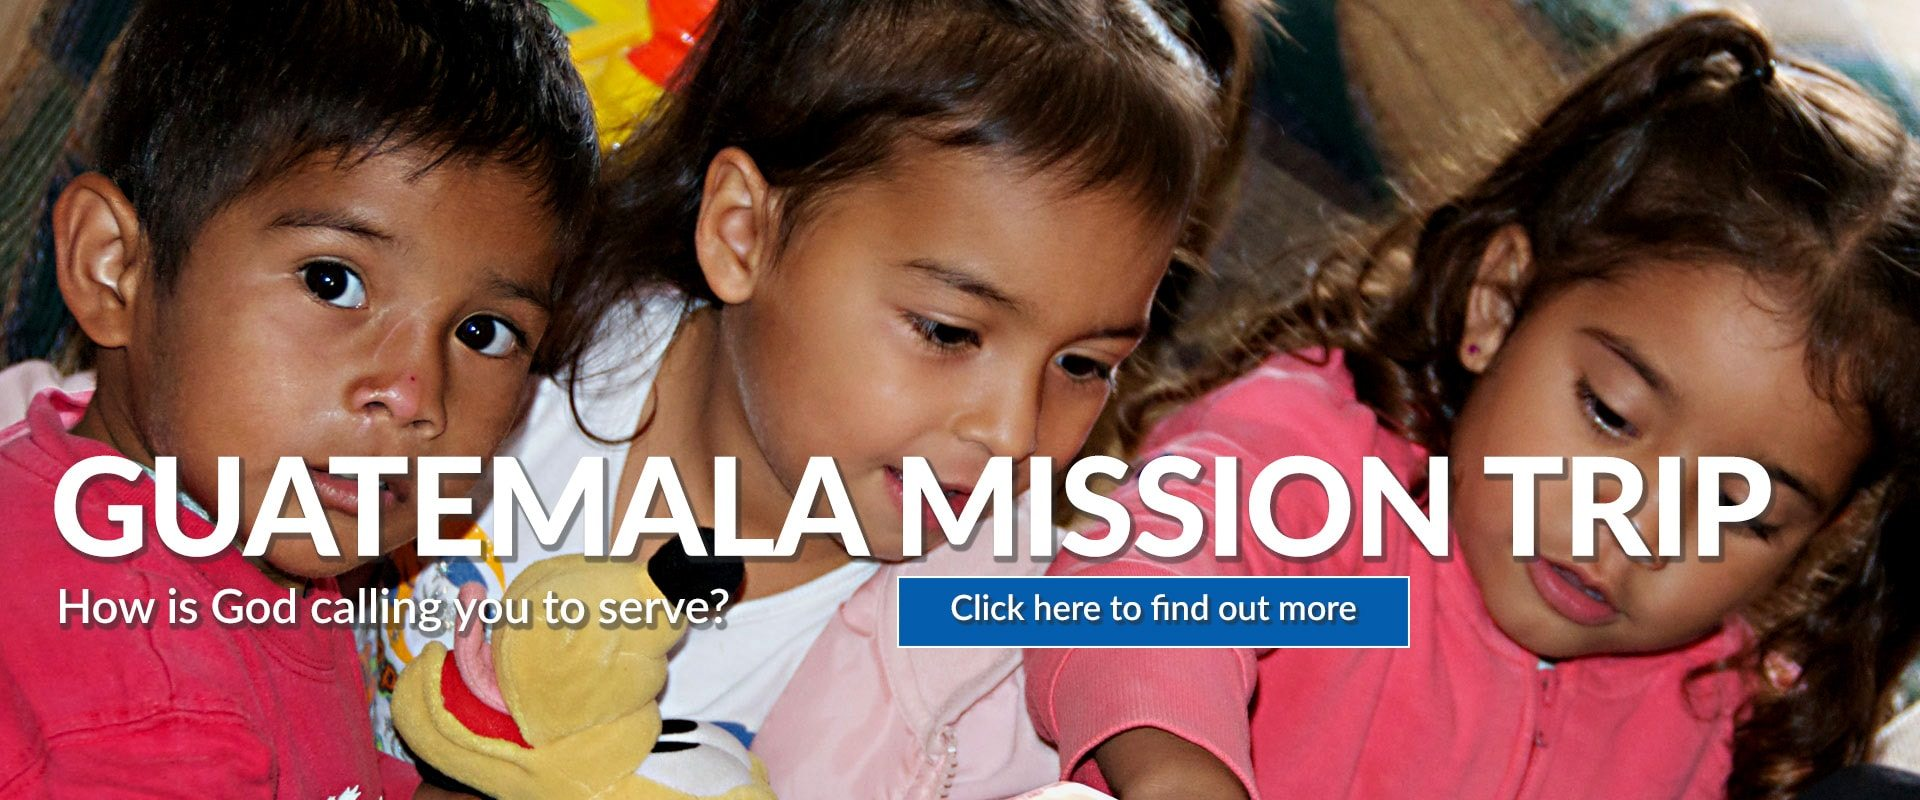 91.3 KGLY Guatemala Mission Trip Orphan Outreach